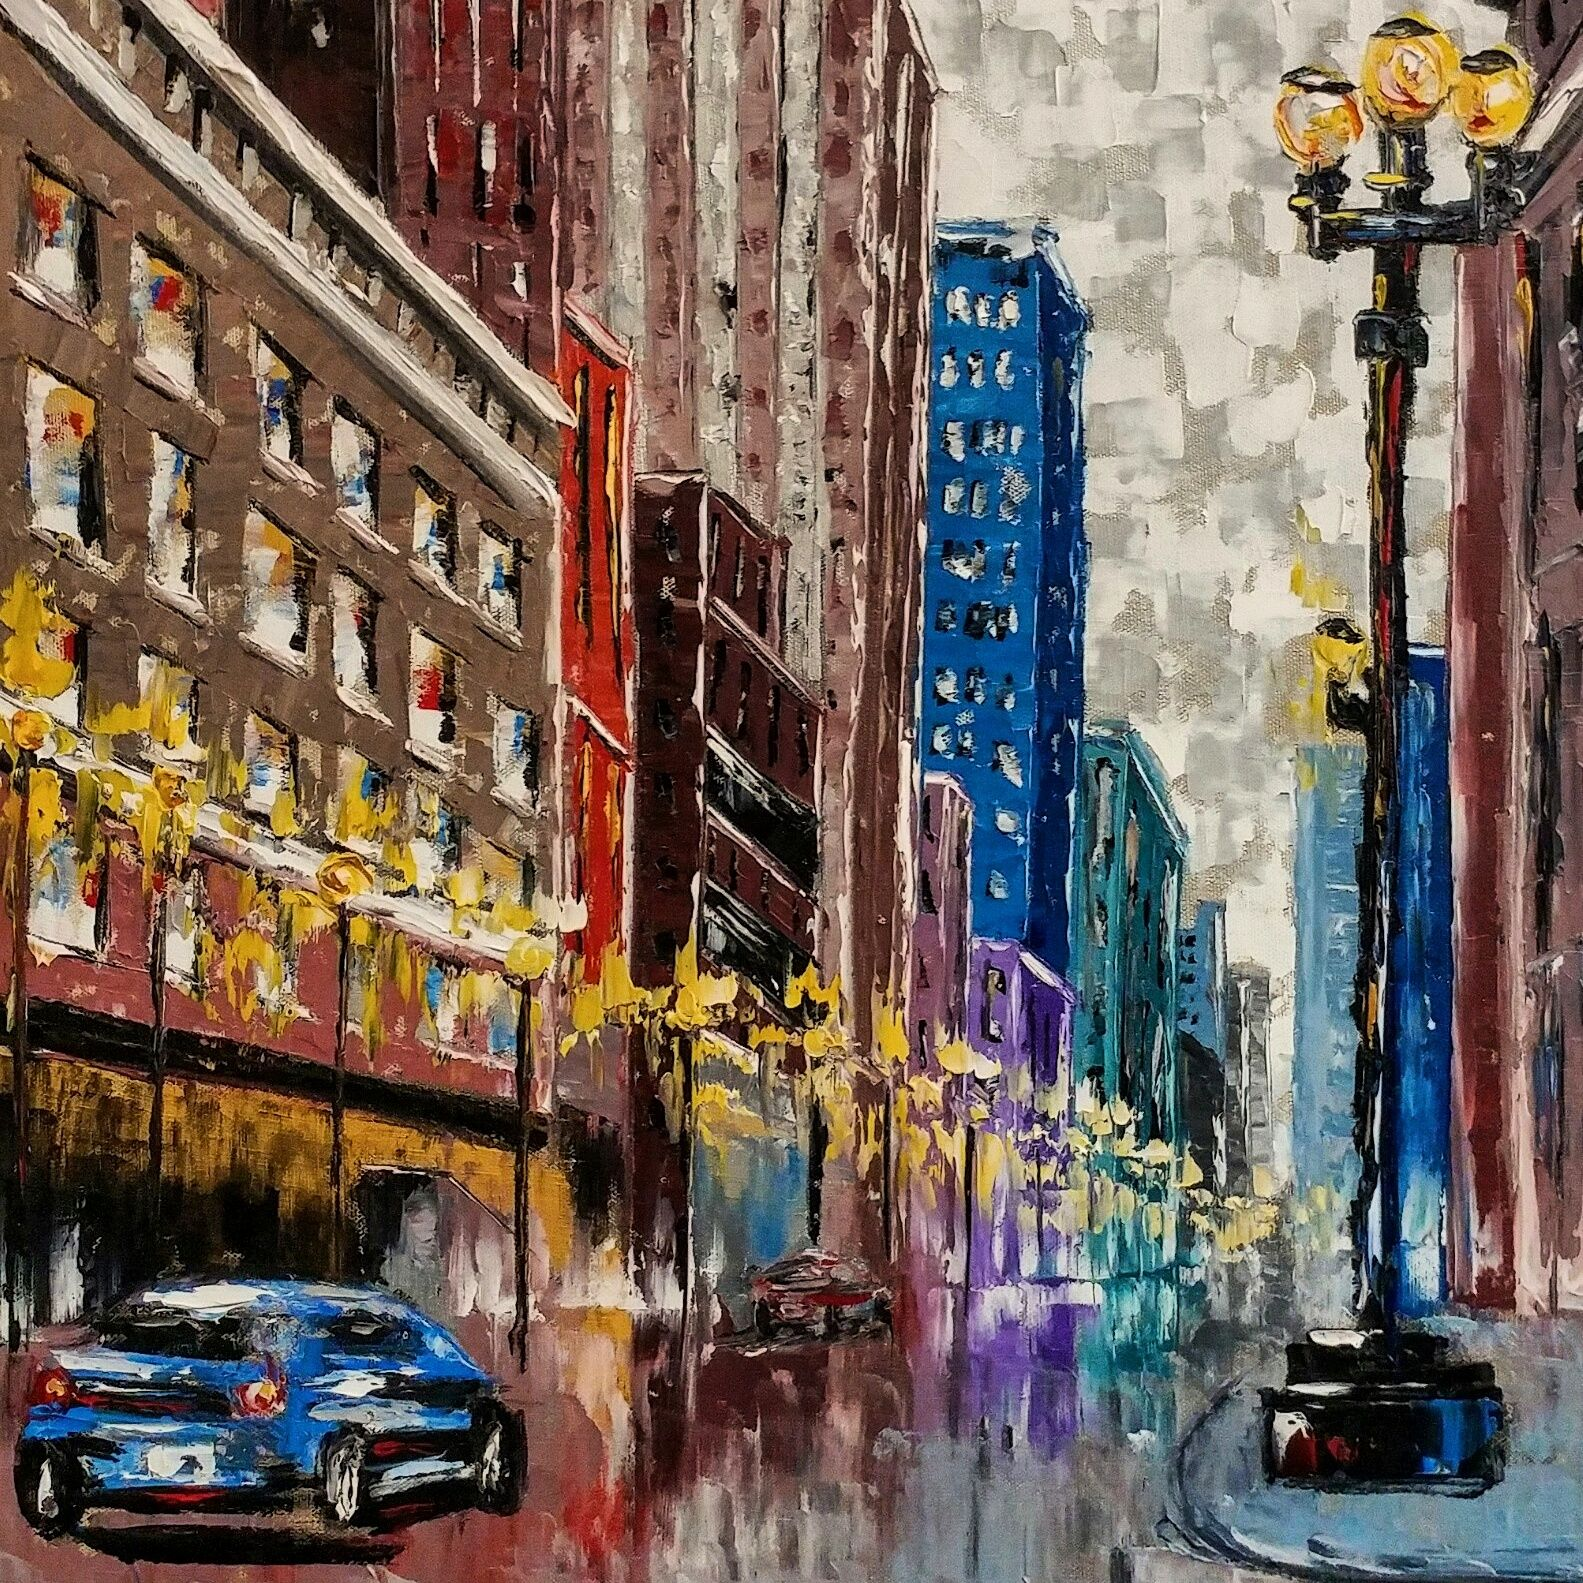 Art Night in the City 24x18 Oil By Emilie Beadle